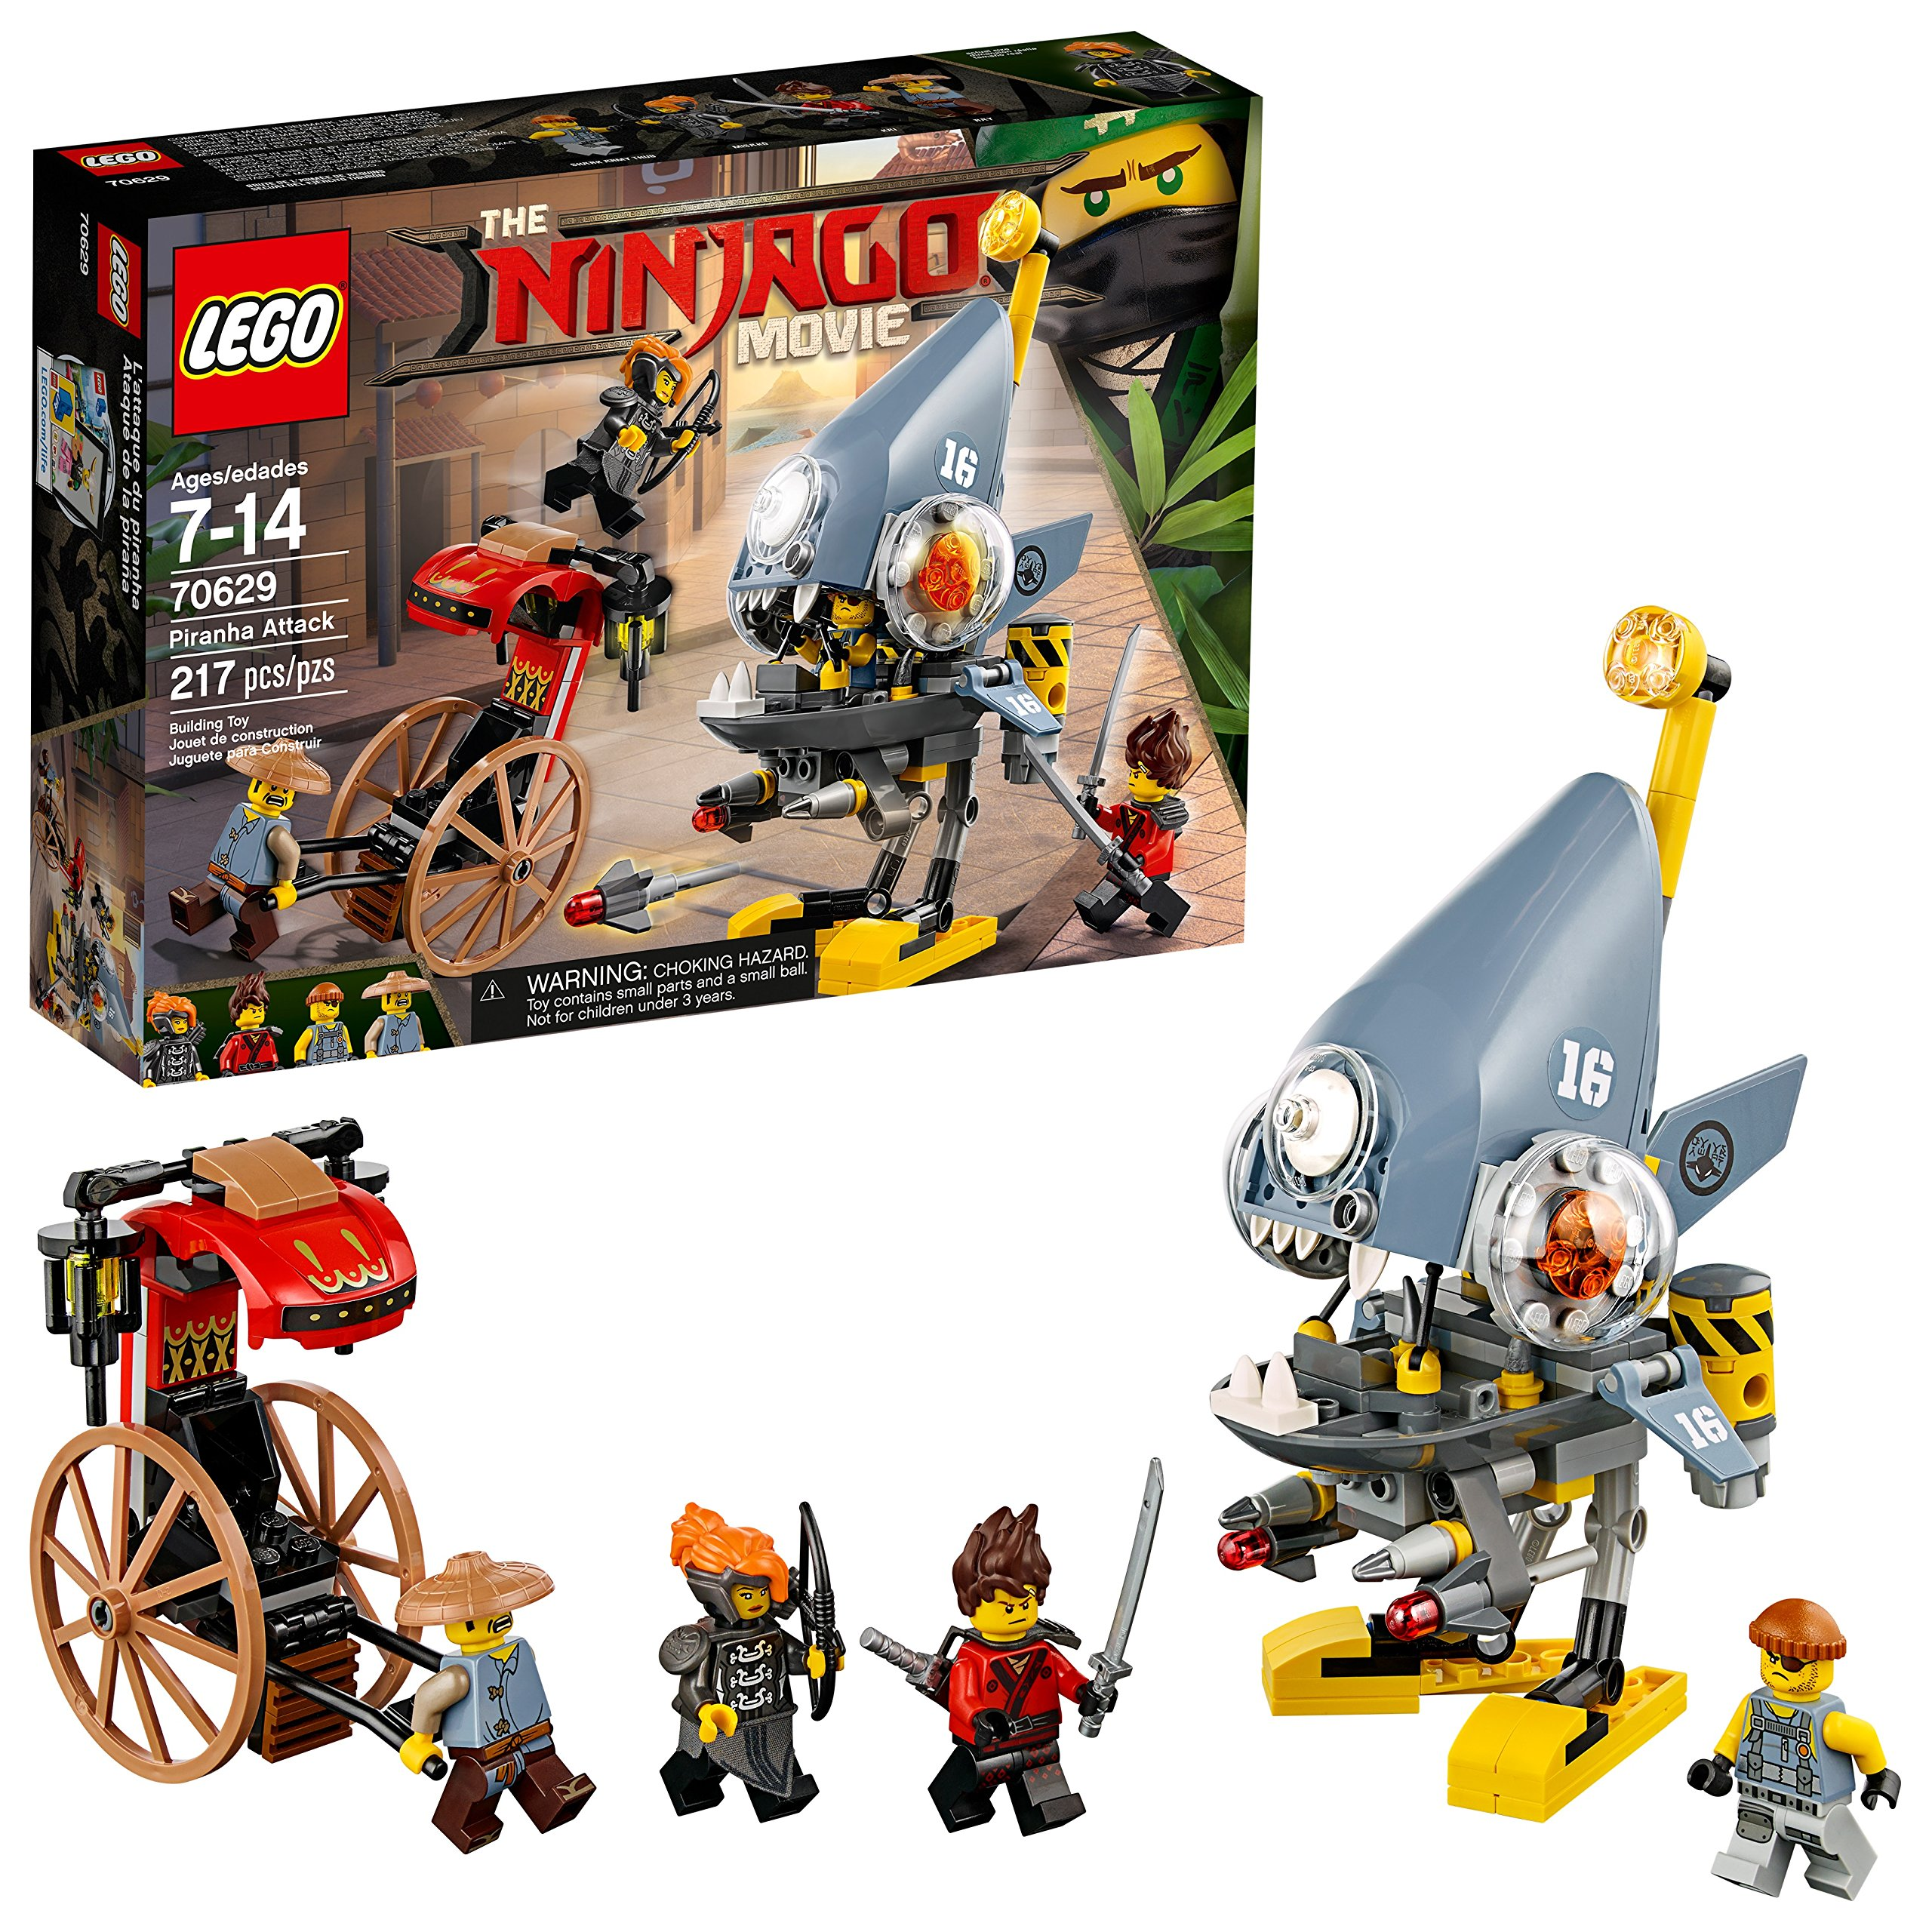 Details about LEGO Ninjago Movie Piranha Attack Minifigures Complete Set  Box Sealed New Gift